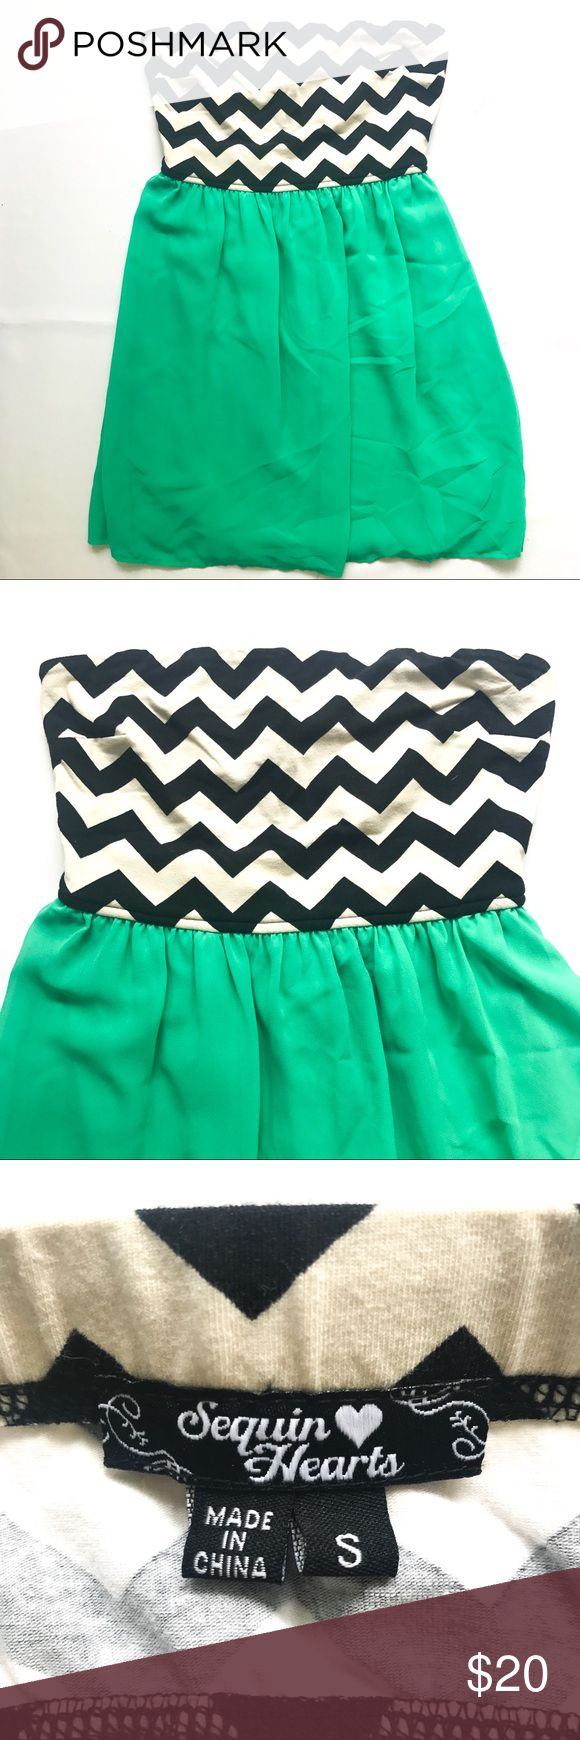 Cute chevron top with teal flowy skirt dress Cute chevron top with teal flowy skirt junior dress with cutout in the back. Sequin Hearts Dresses Strapless